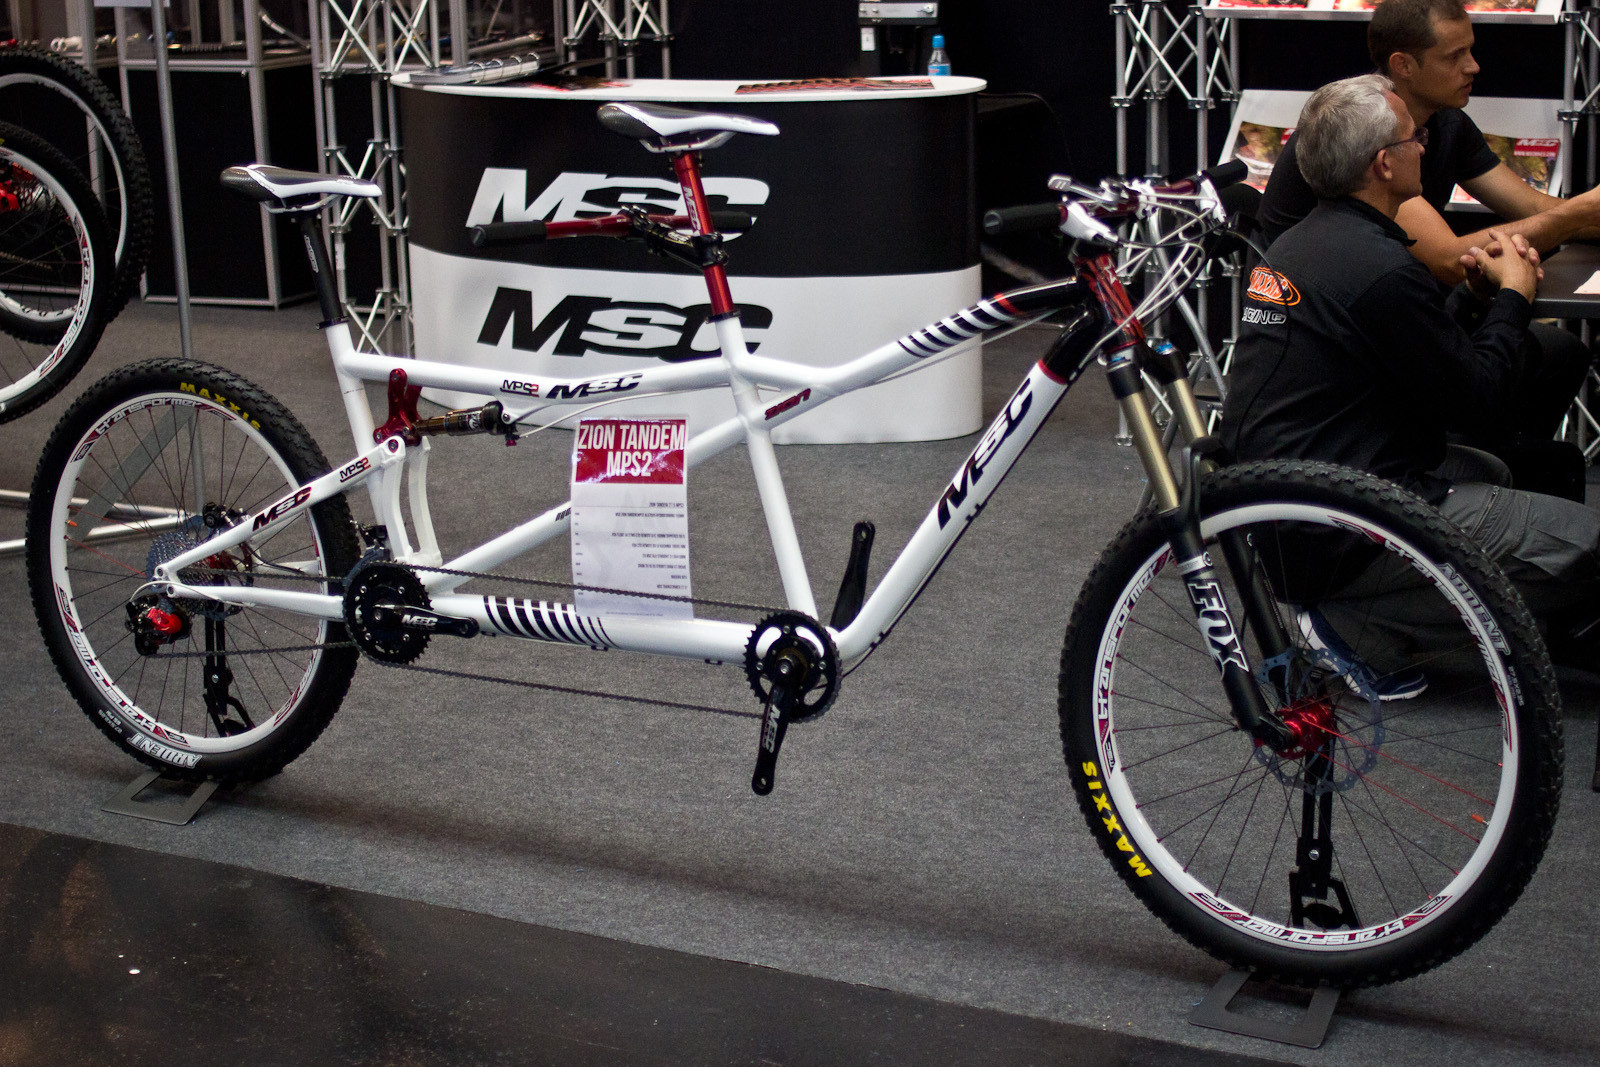 2014 MSC Zion Tandem MPS2 - 2014 Trail, All-Mountain & Enduro Bikes at Eurobike 2013 - Mountain Biking Pictures - Vital MTB